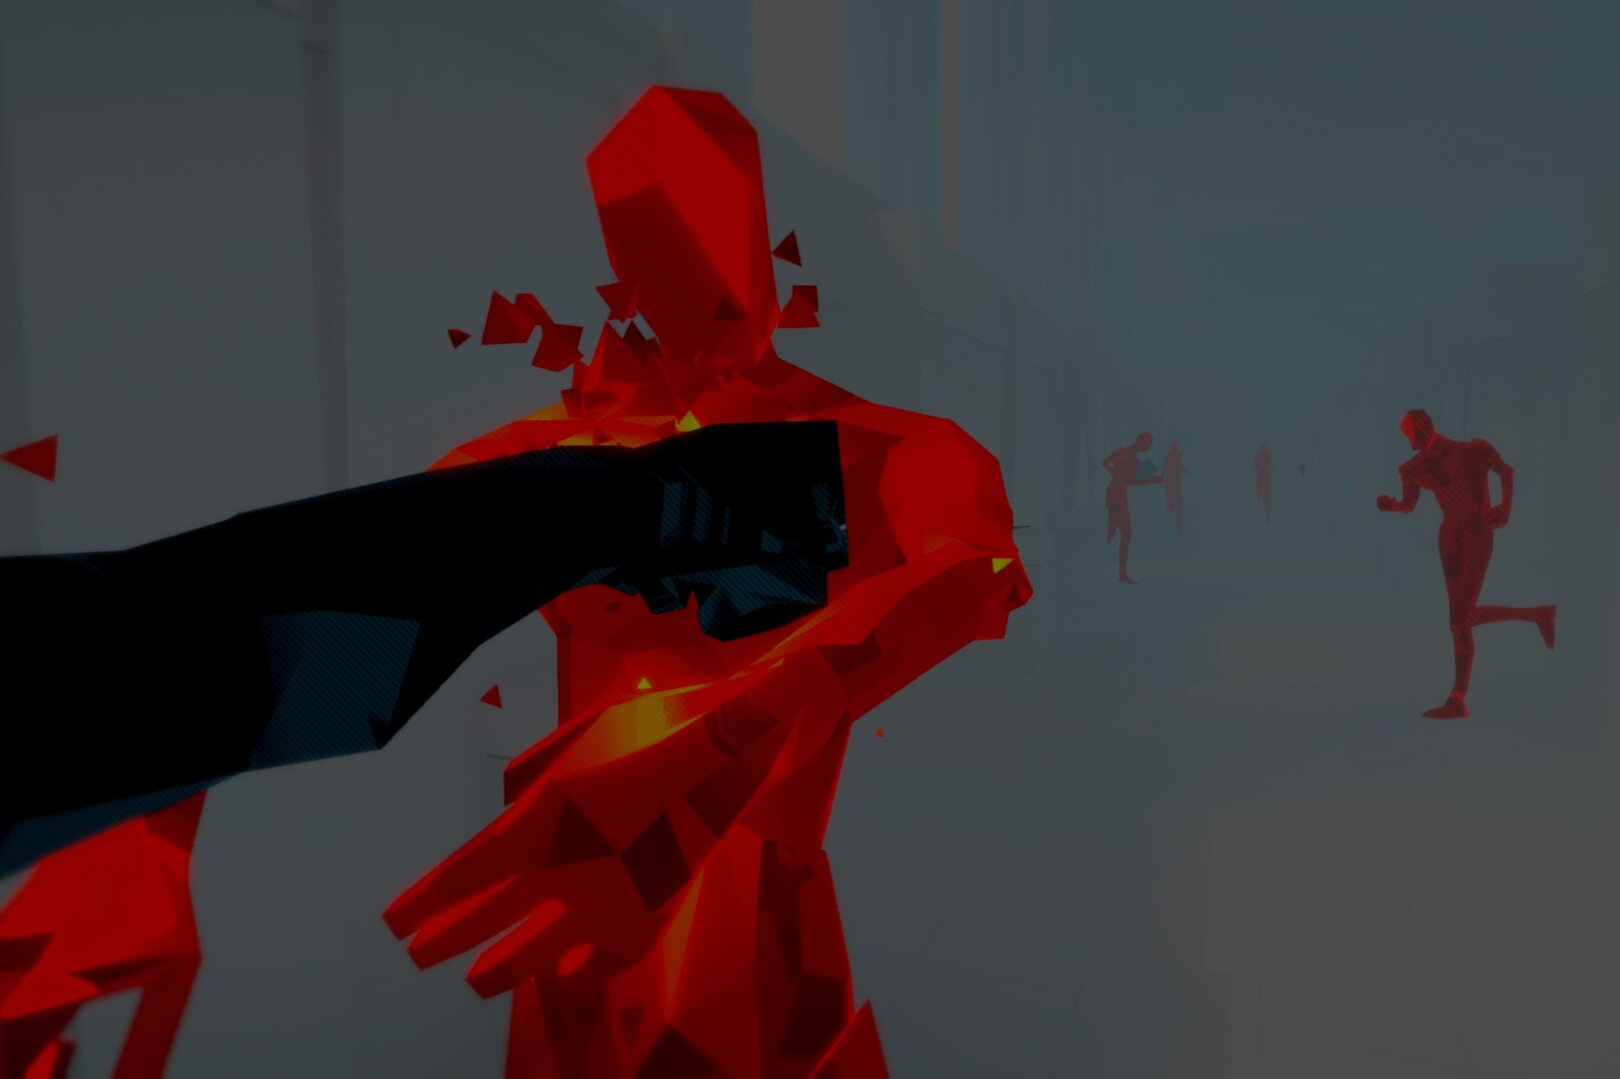 SuperHot - Enemies pouring into the room from all sides, a dozen bullets coursing through the air... wait. Something's different here. Time only moves when I move.